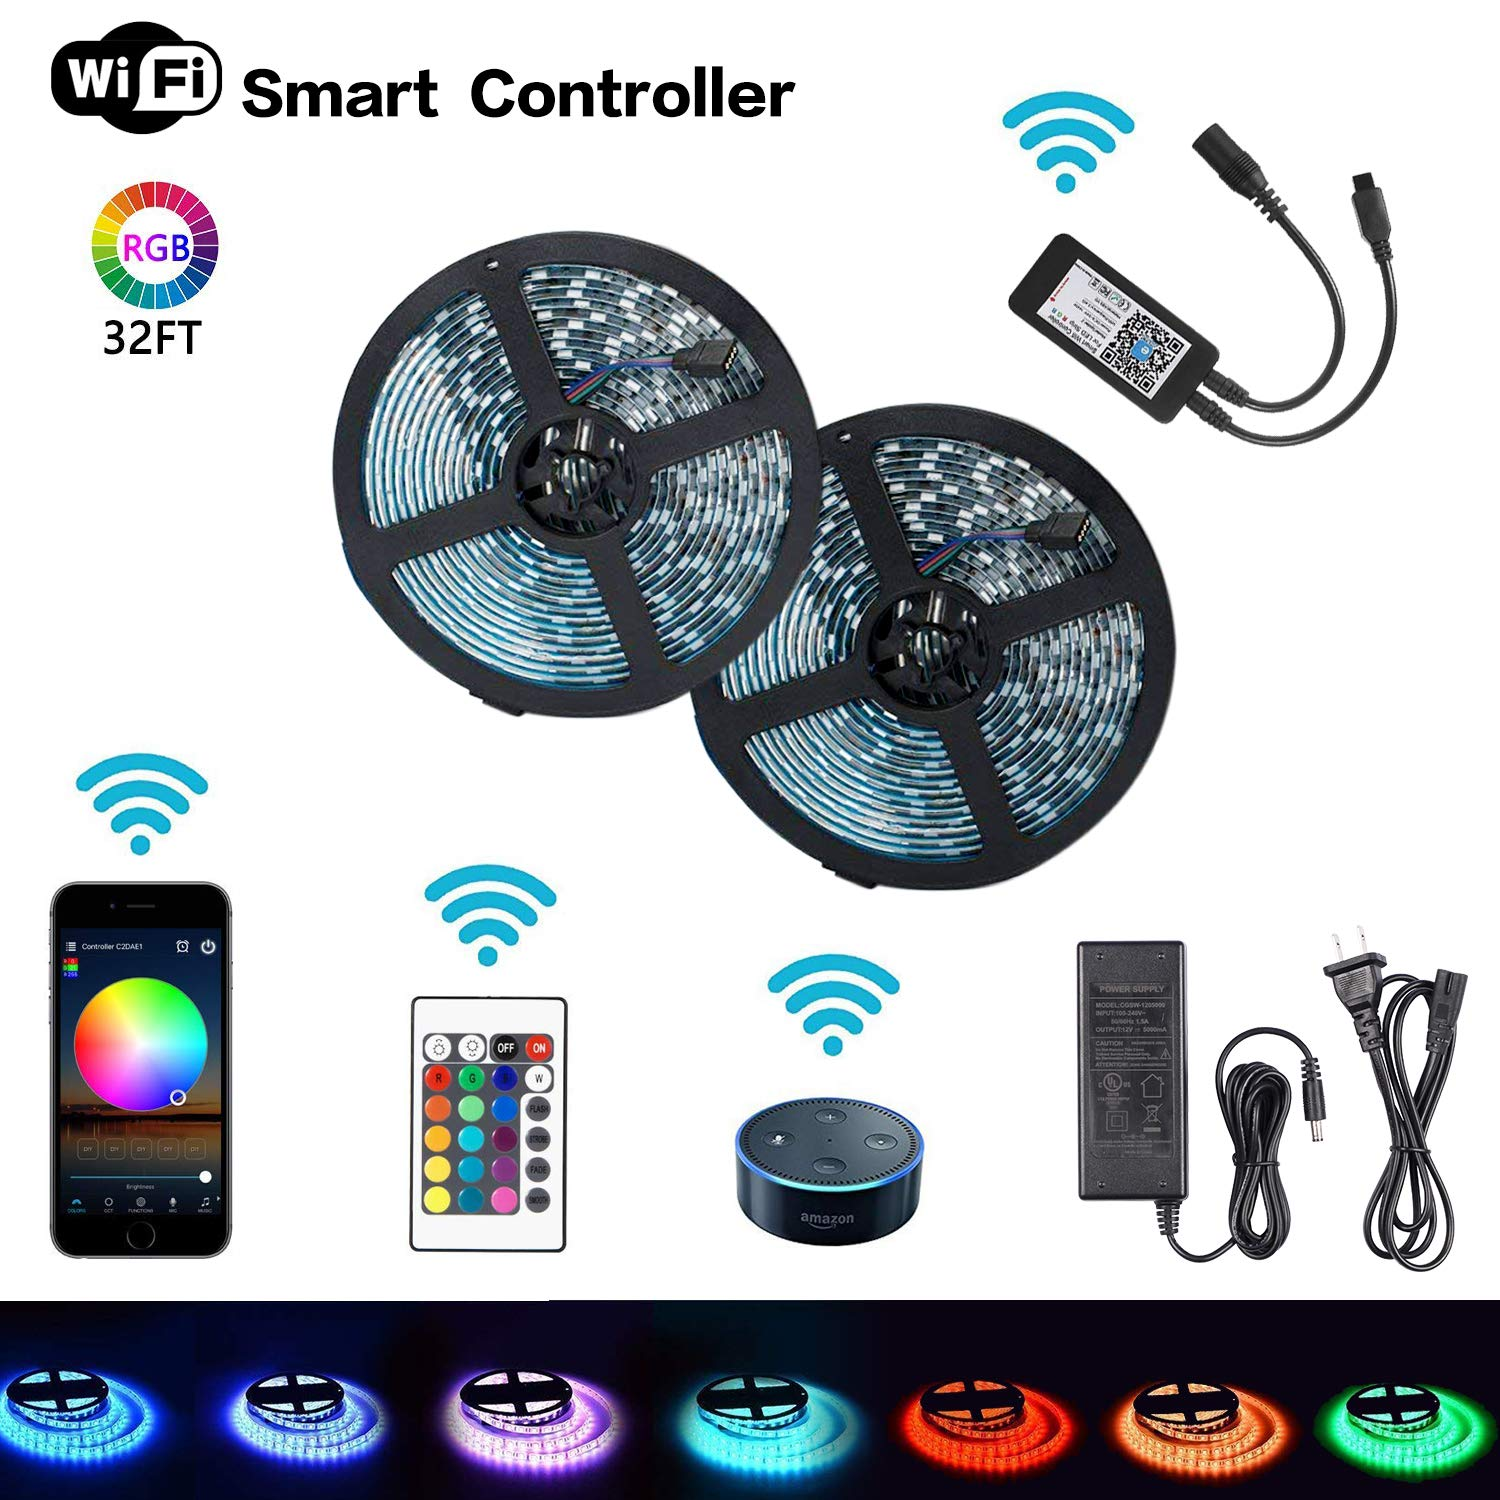 MIECOO LED Strip Lights, WiFi Wireless Smart Phone Controlled Light Strip Kit 32.8ft 300leds 5050 RGB Waterproof IP65 LED Lights, Working with Android and iOS System, Alexa, IFTTT, Google Assistant